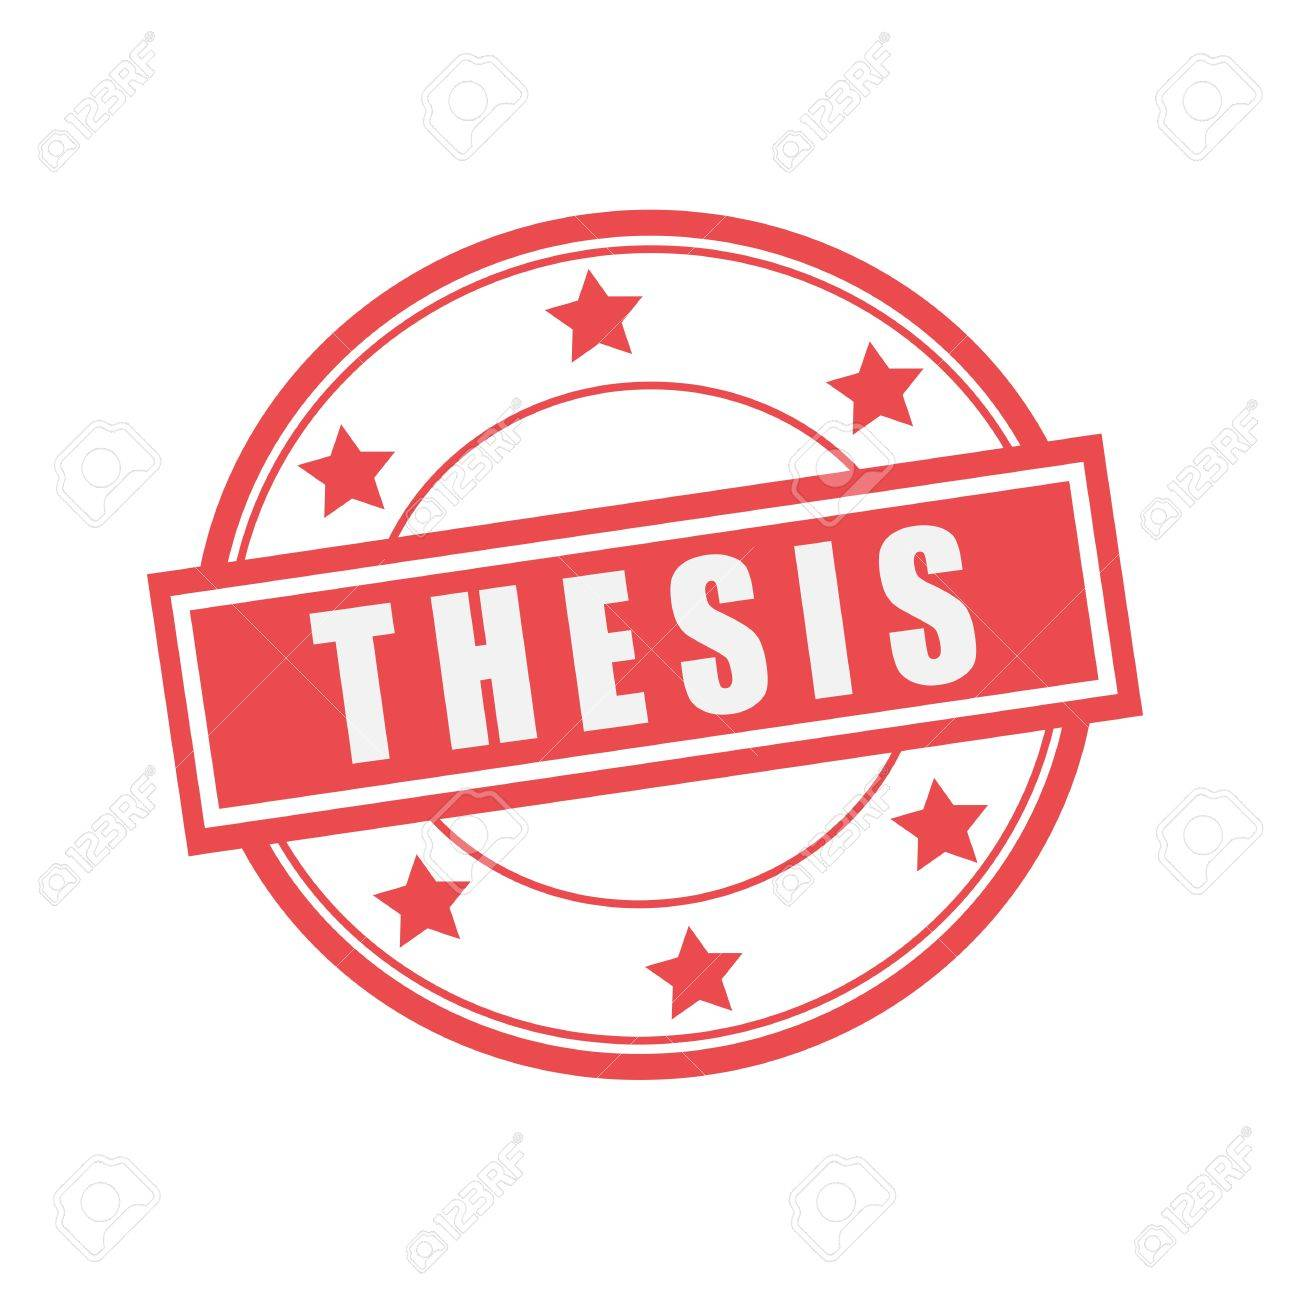 Thesis White Stamp Text On Circle On Red Background And Star Stock Photo,  Picture And Royalty Free Image. Image 47643169.